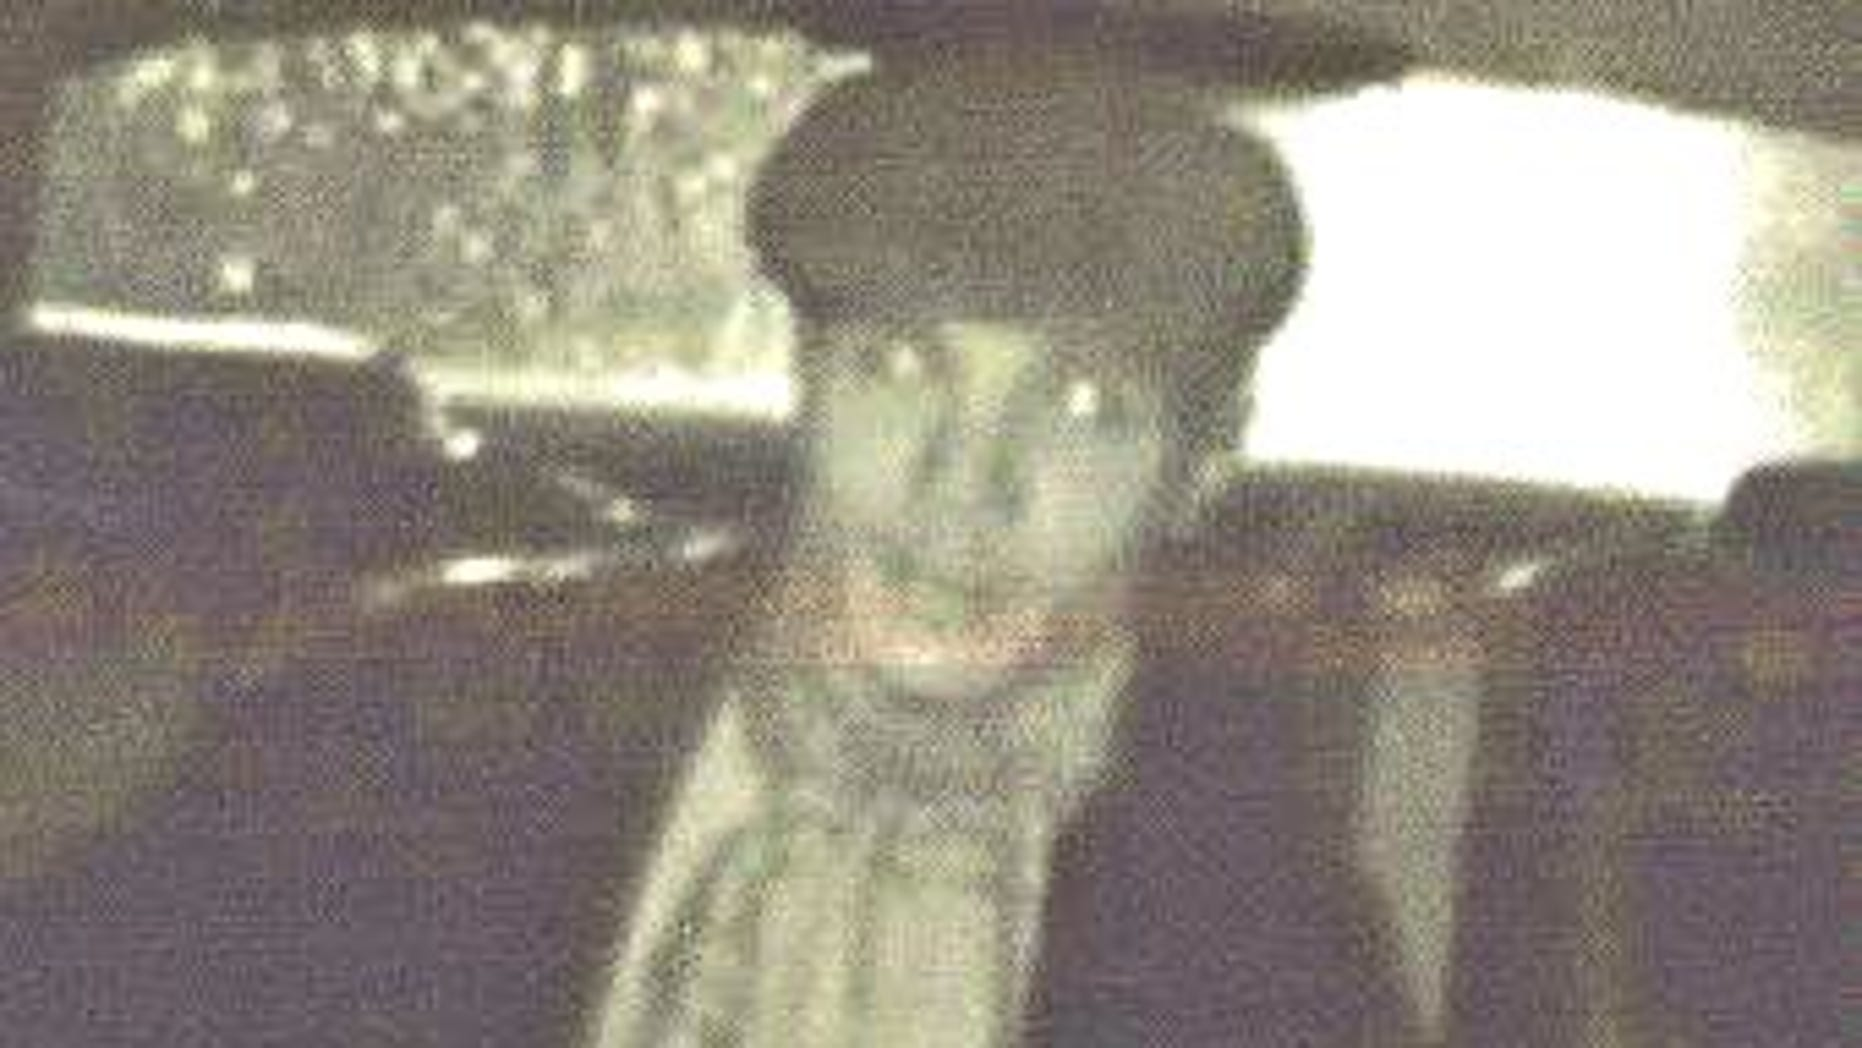 Suspect in savage attack on New York City cab driver shown in this photo released by the NYPD.